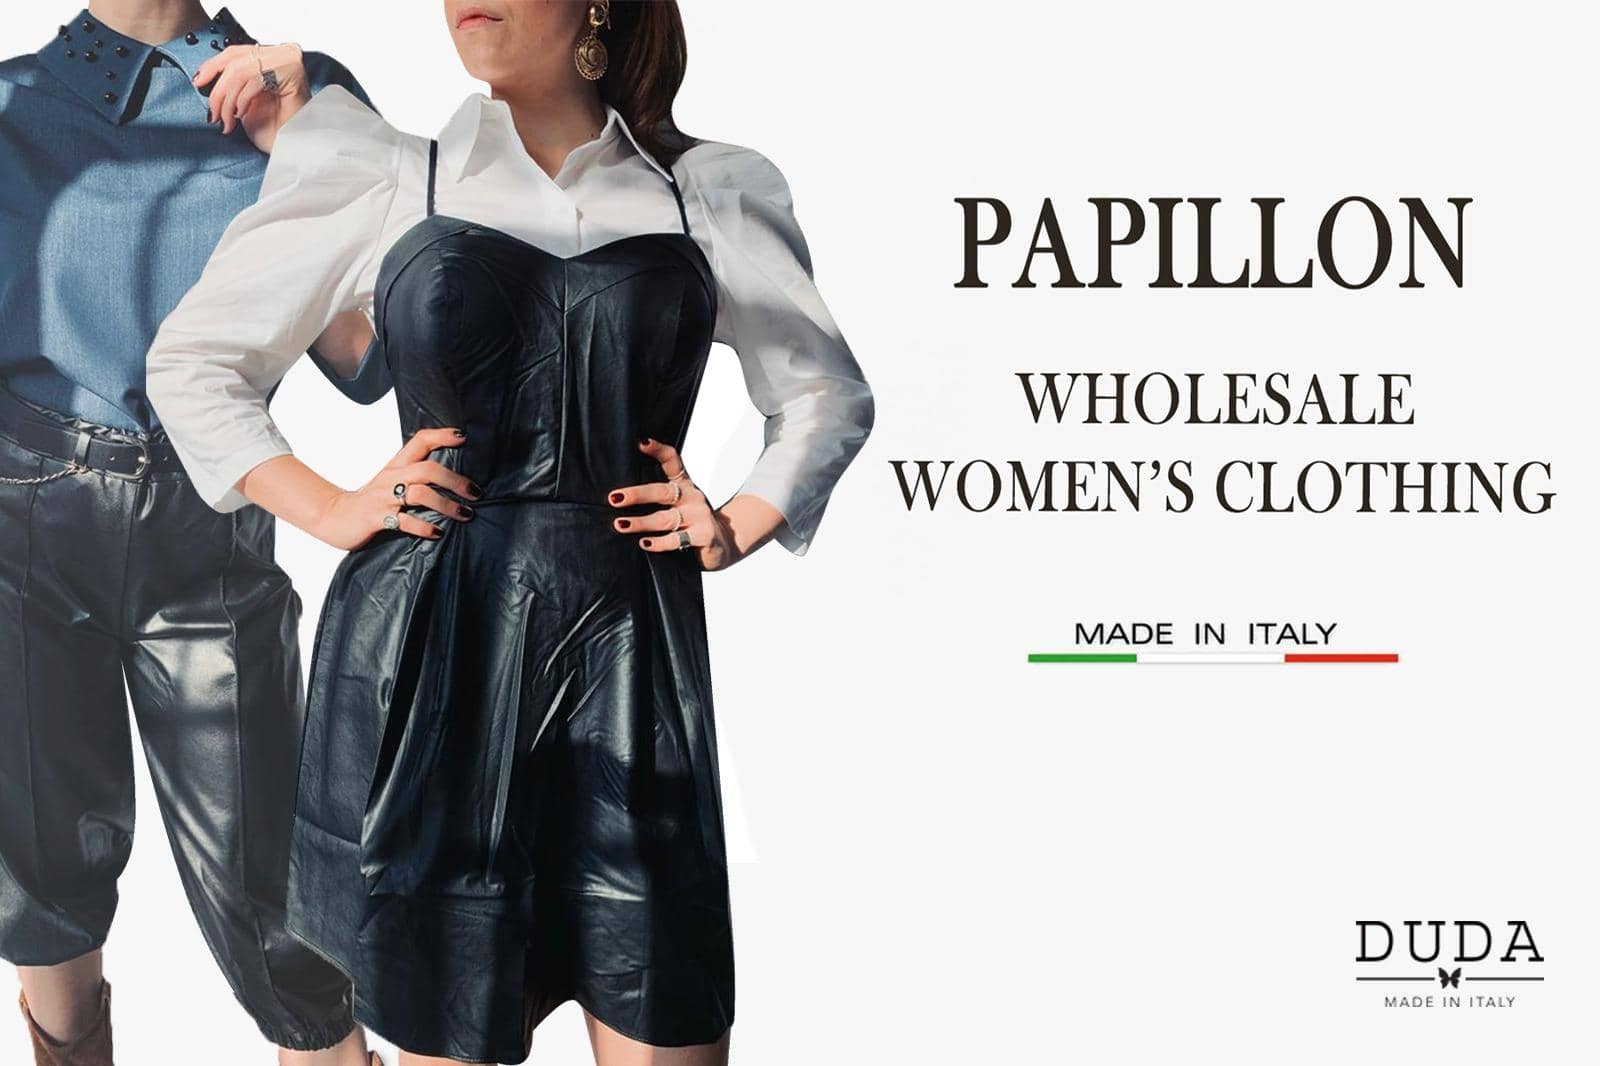 PAPILLON - WHOLESALE WOMEN'S CLOTHING MADE IN ITALY